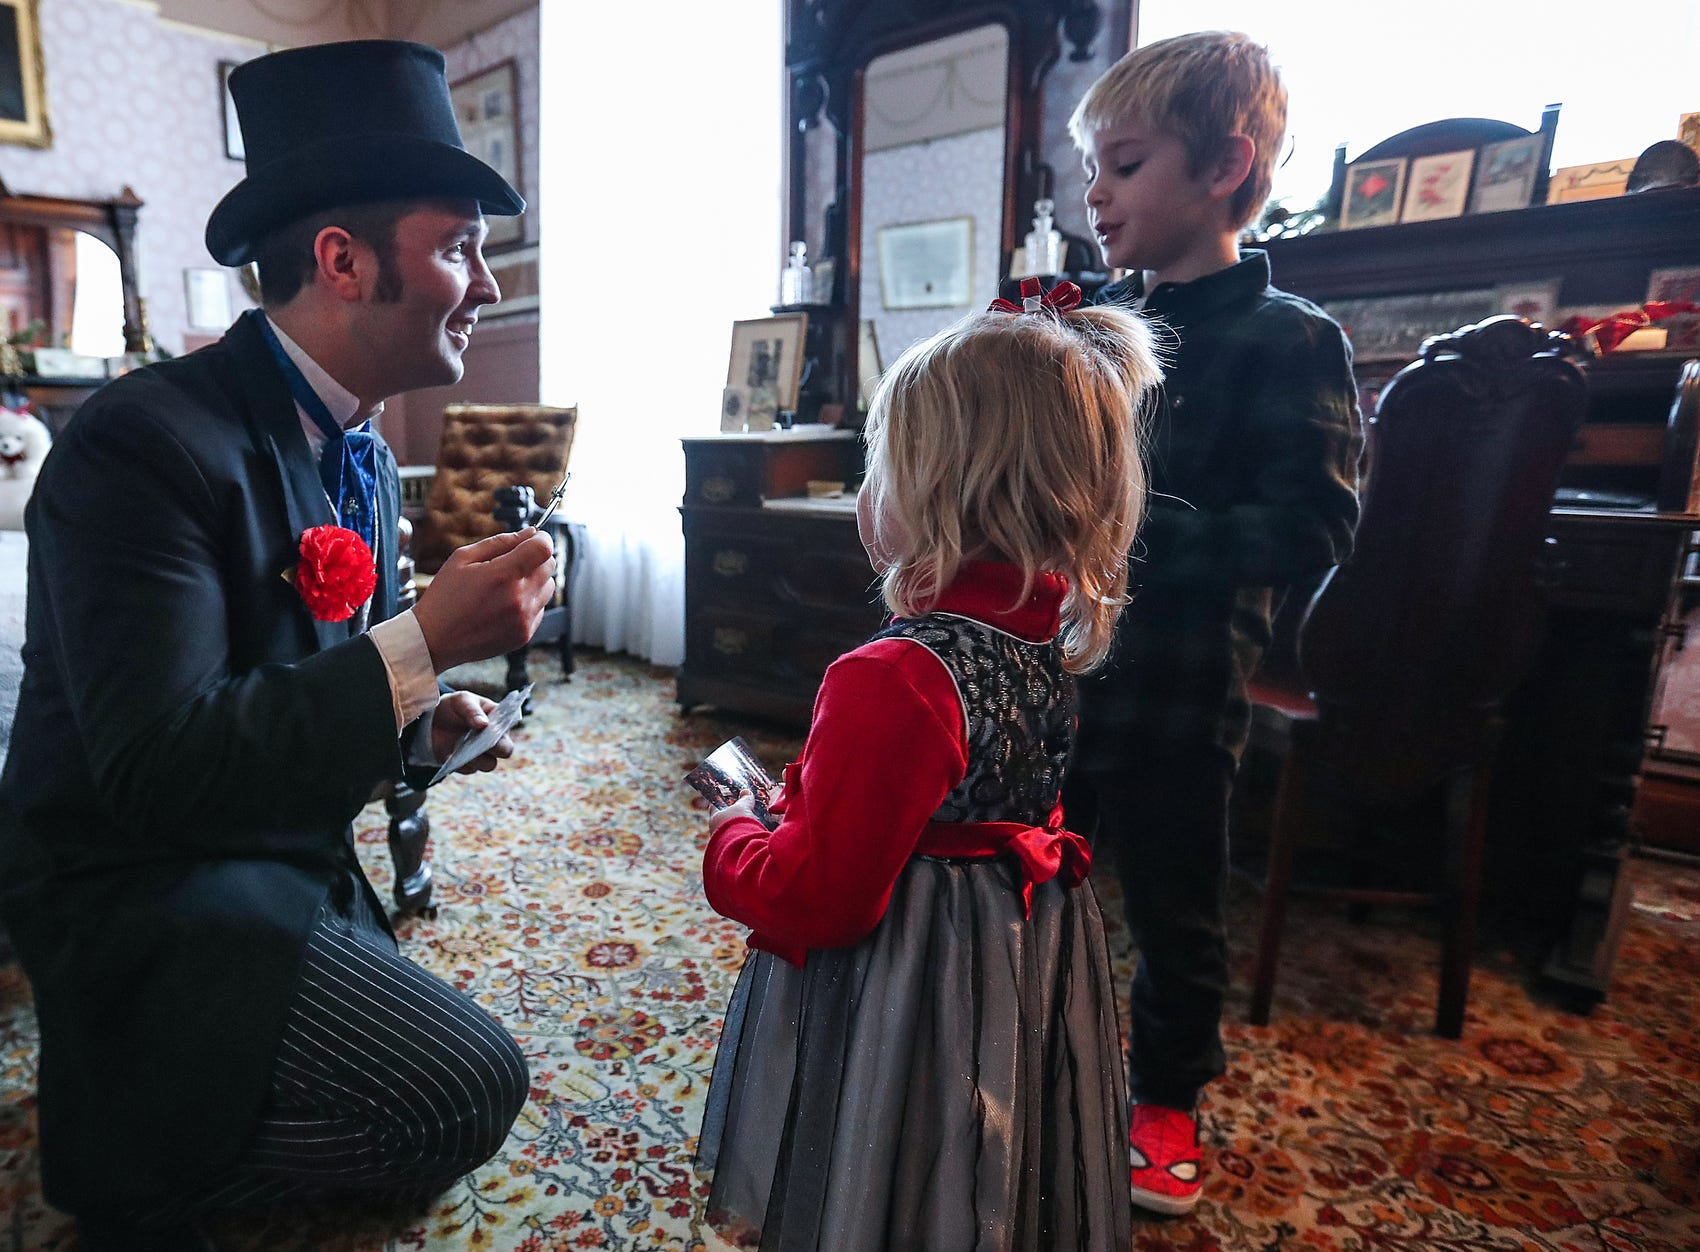 James Whitcomb Riley, portrayed by Chadwick Gillenwater, greets Nora Mize, 2, and Henry Mize, 6, during a Victorian Christmas open house at the James Whitcomb Riley museum home in Indianapolis, Saturday, Dec. 8, 2018.